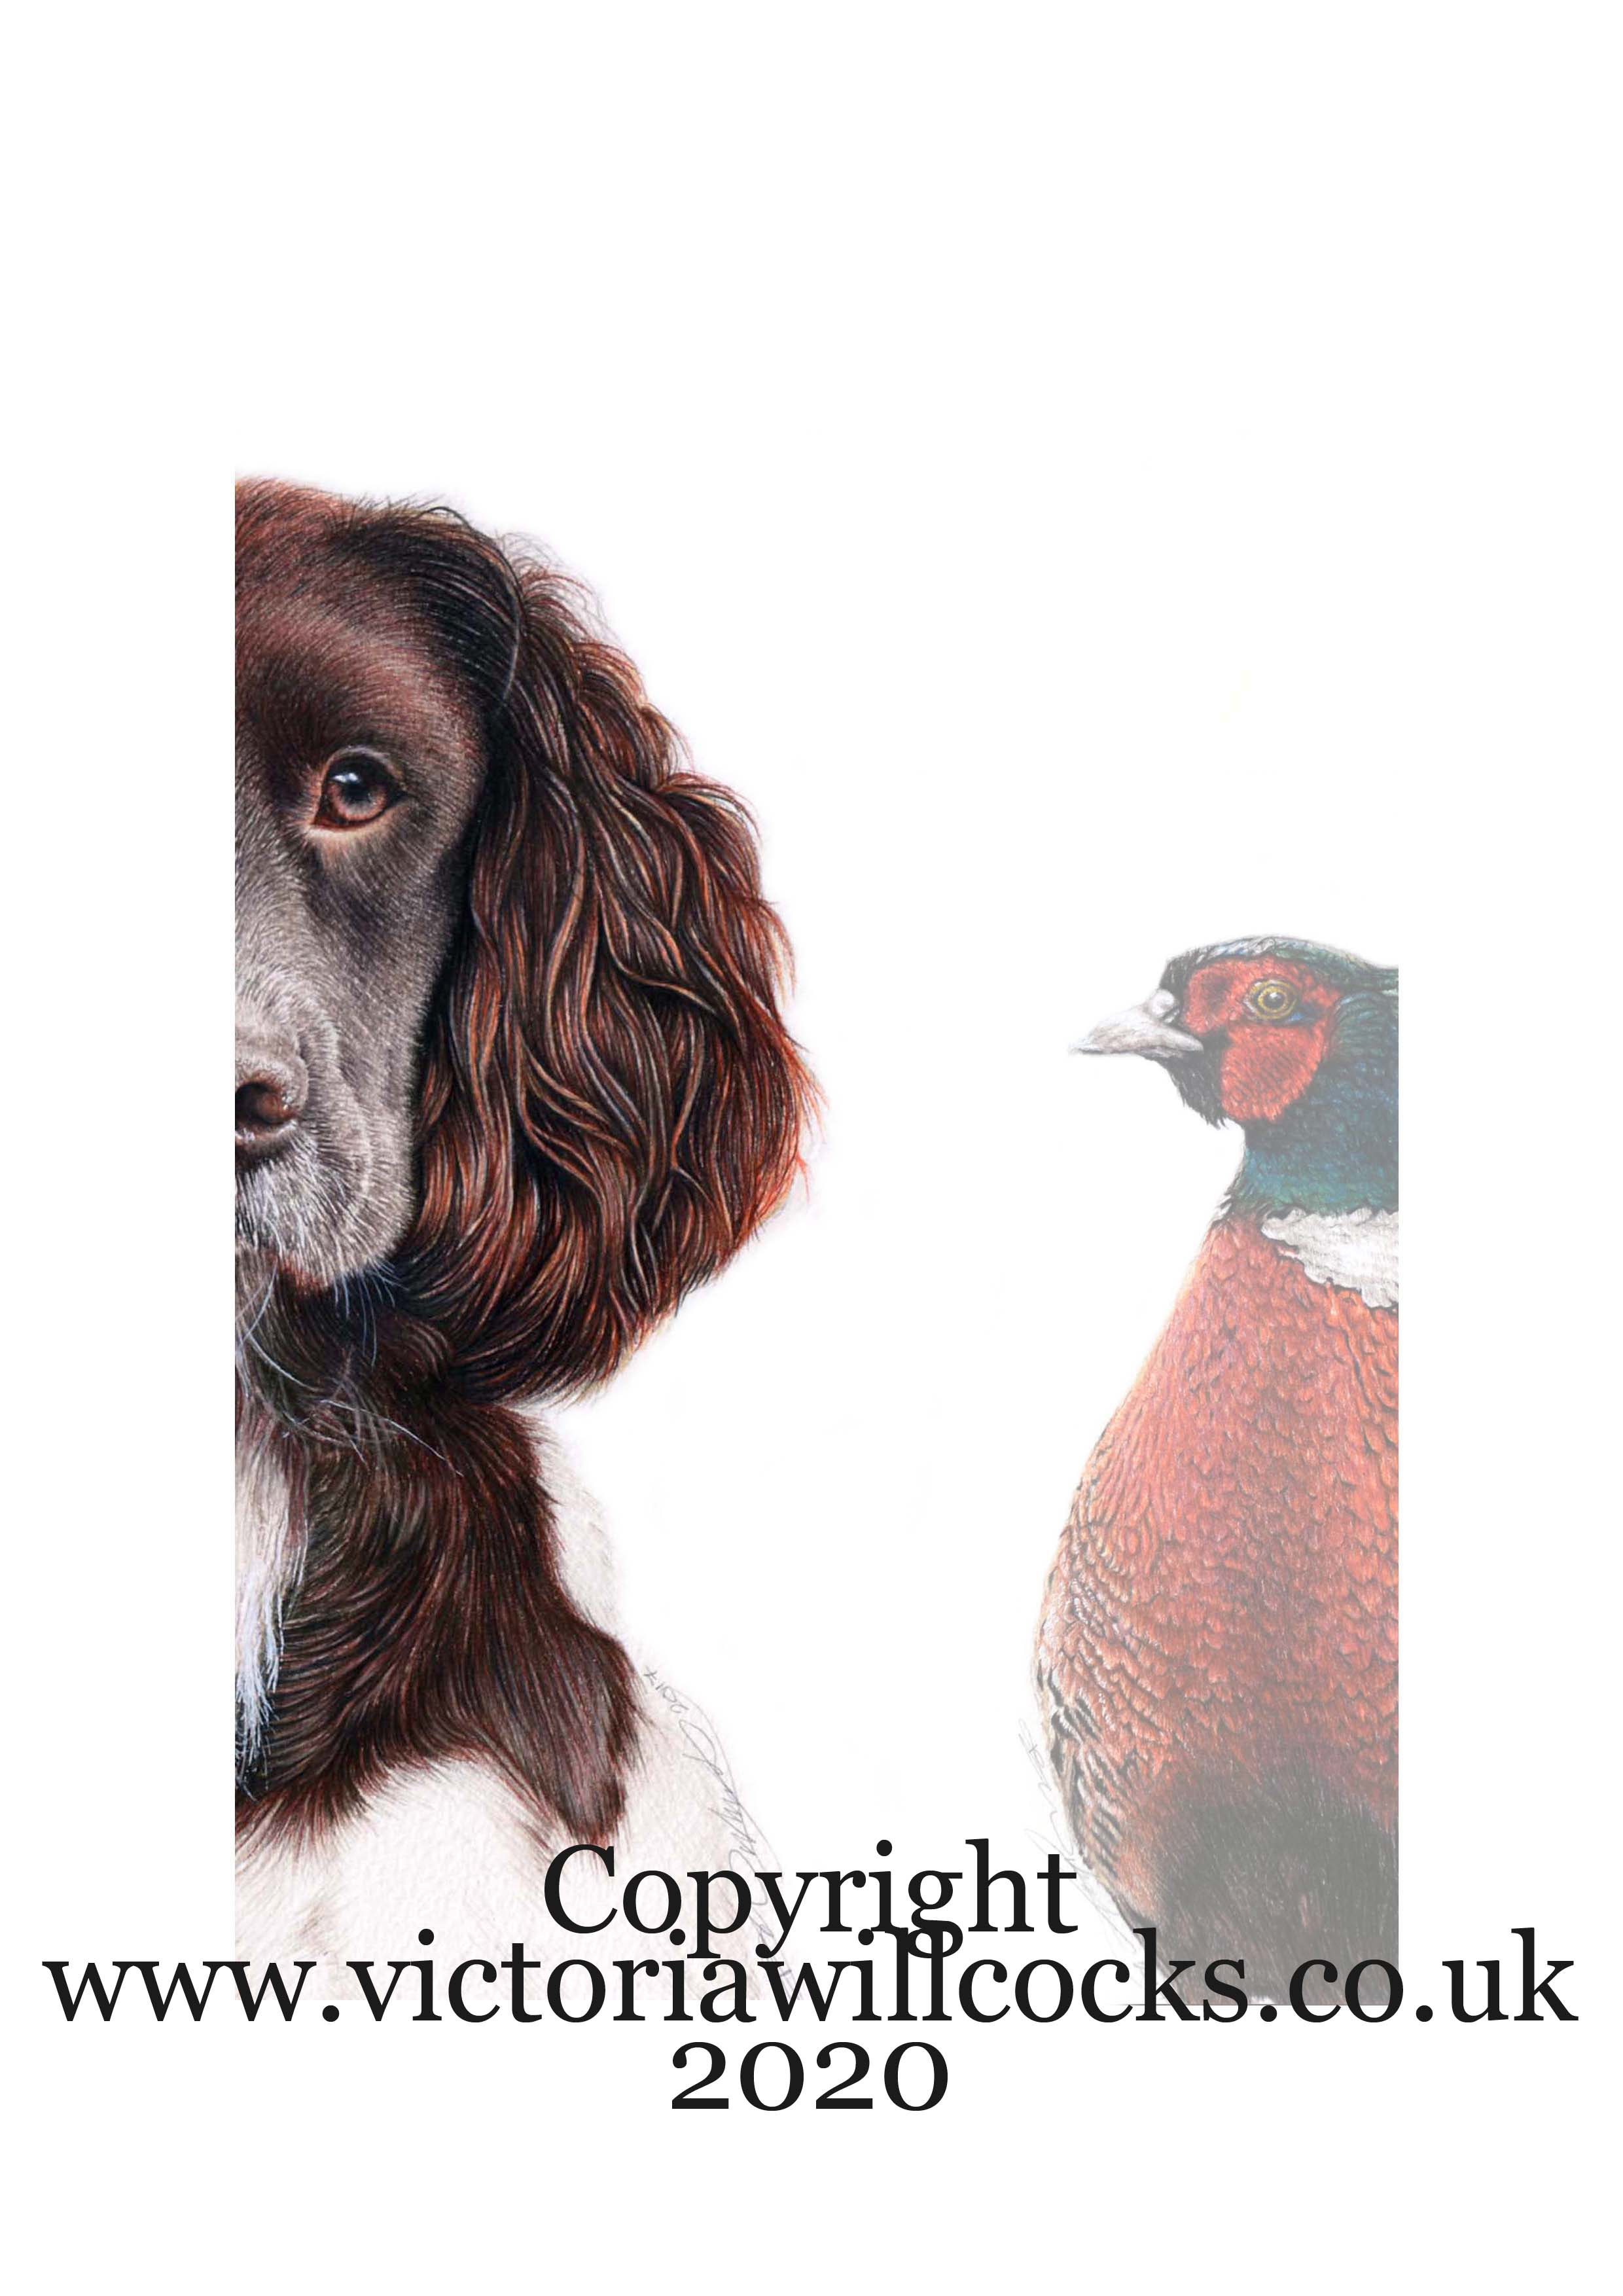 Spaniel and Pheseant Victoria Willcocks.